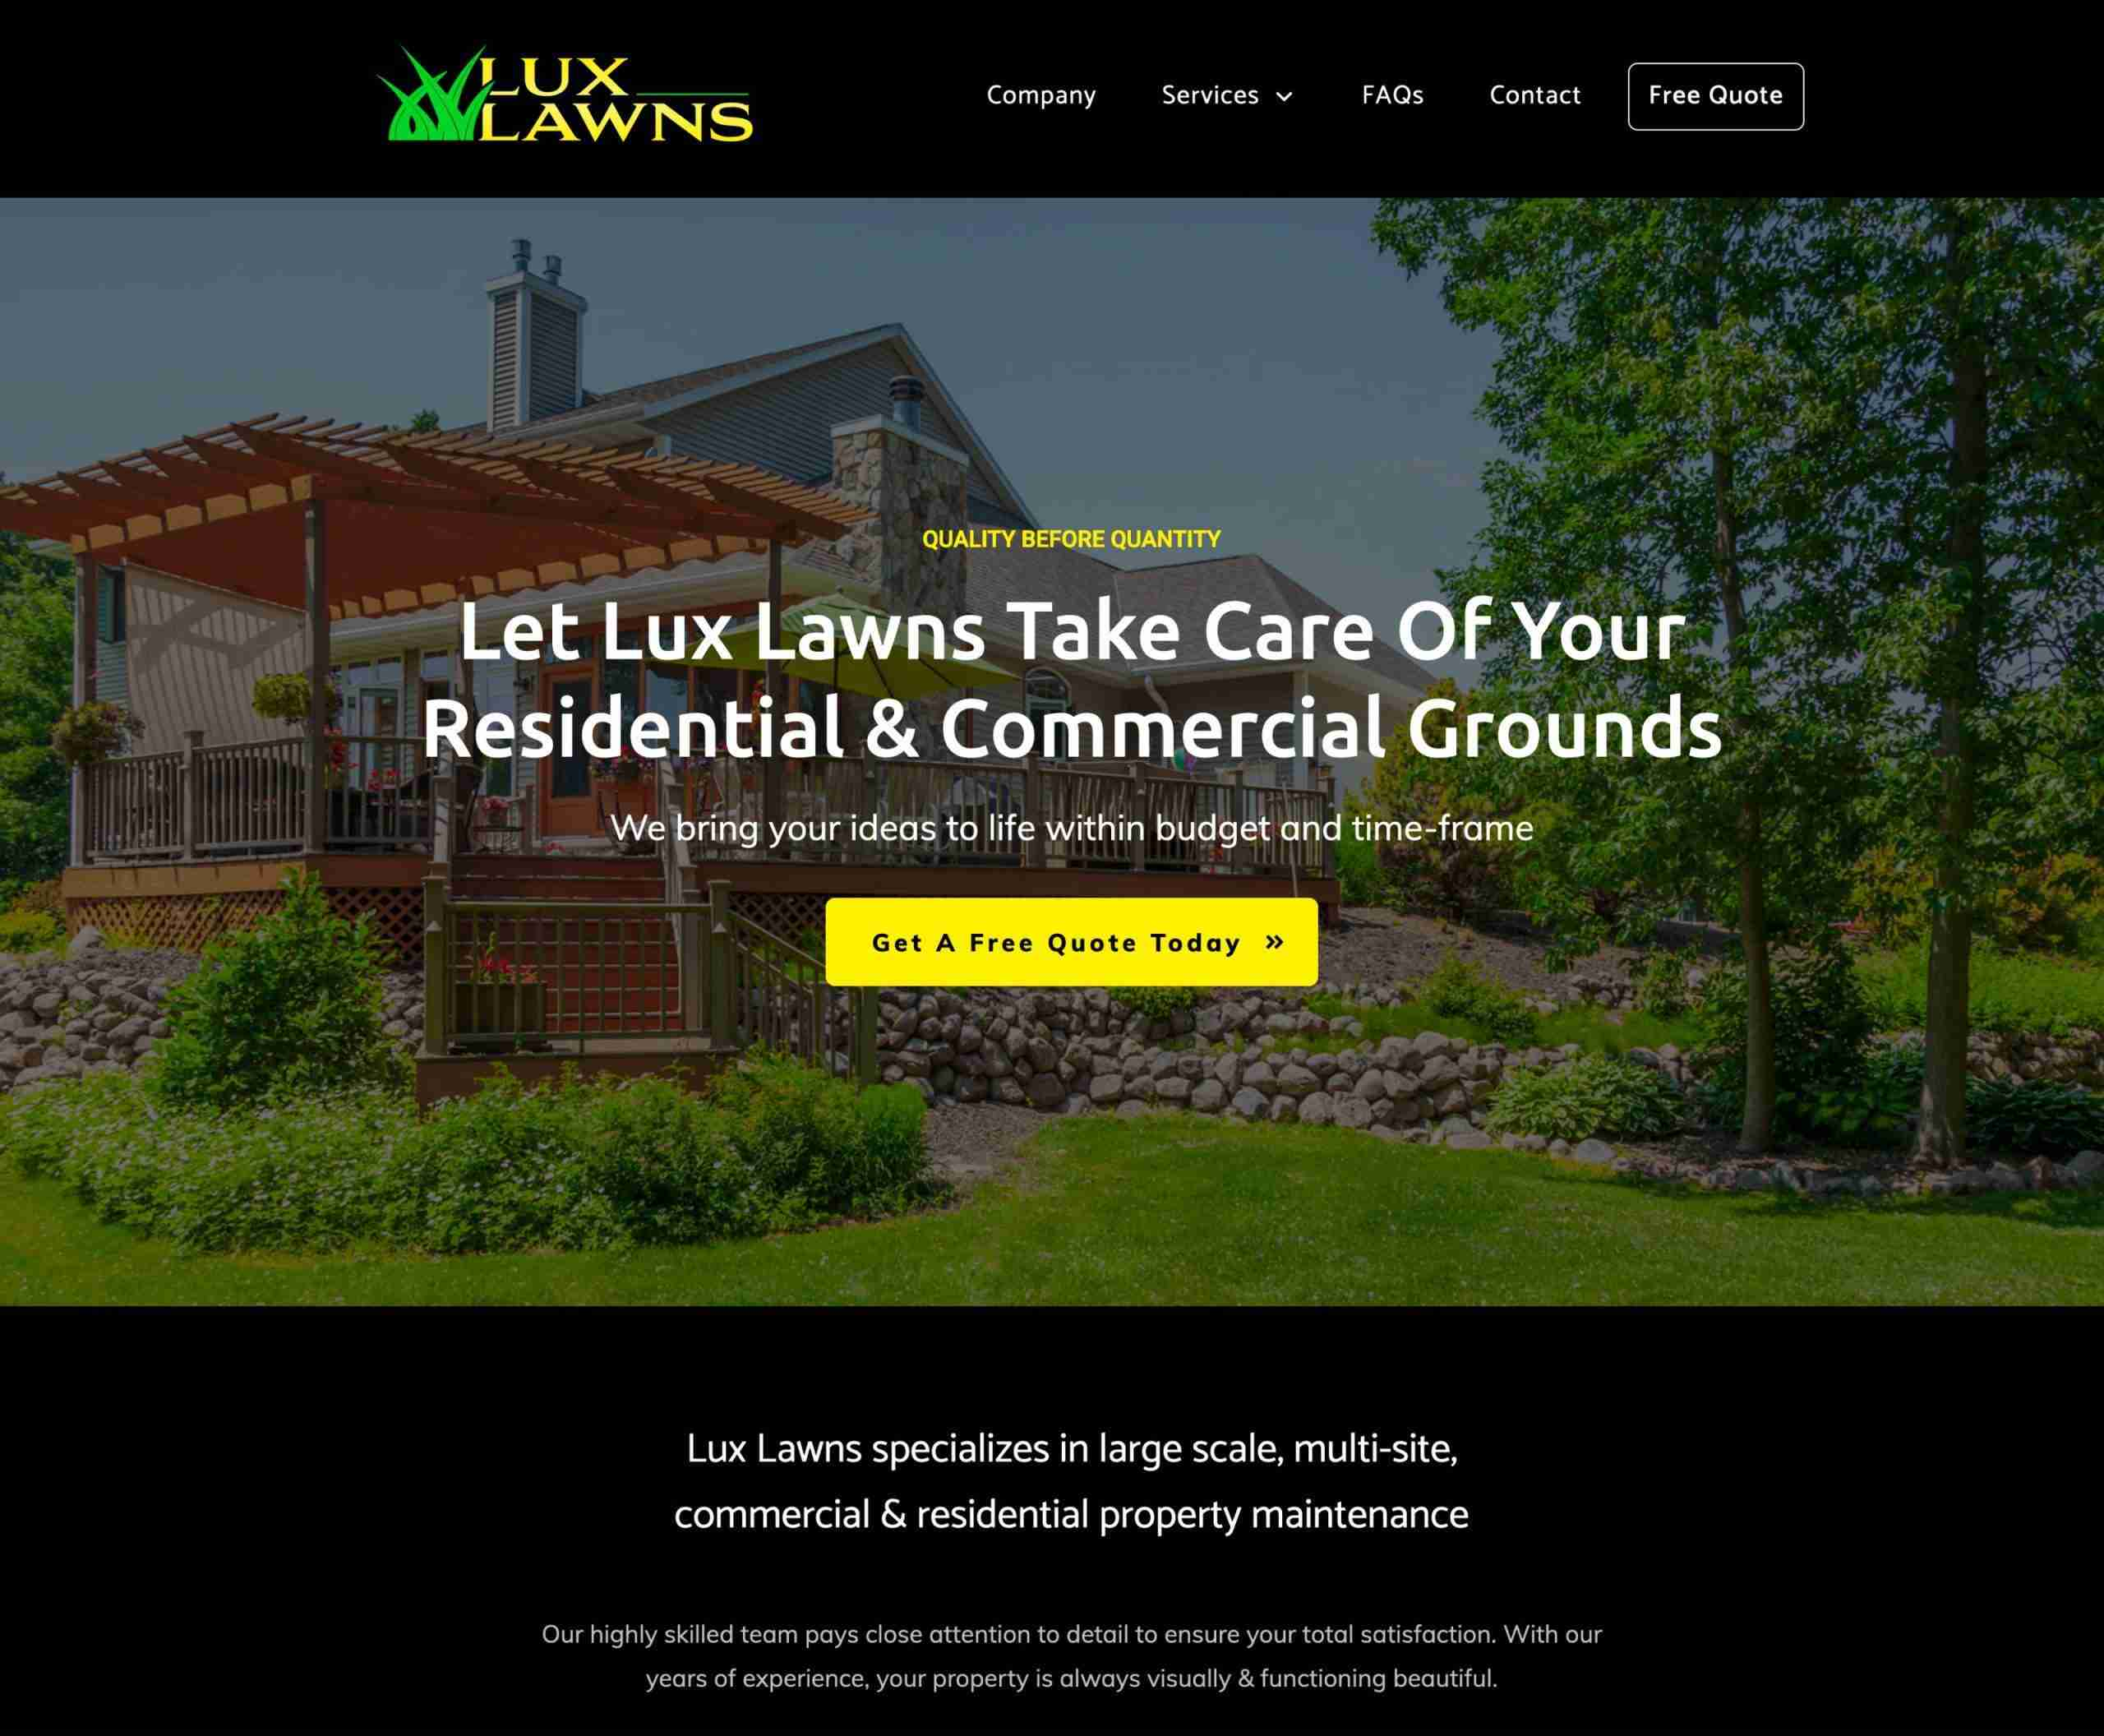 Lux Lawns